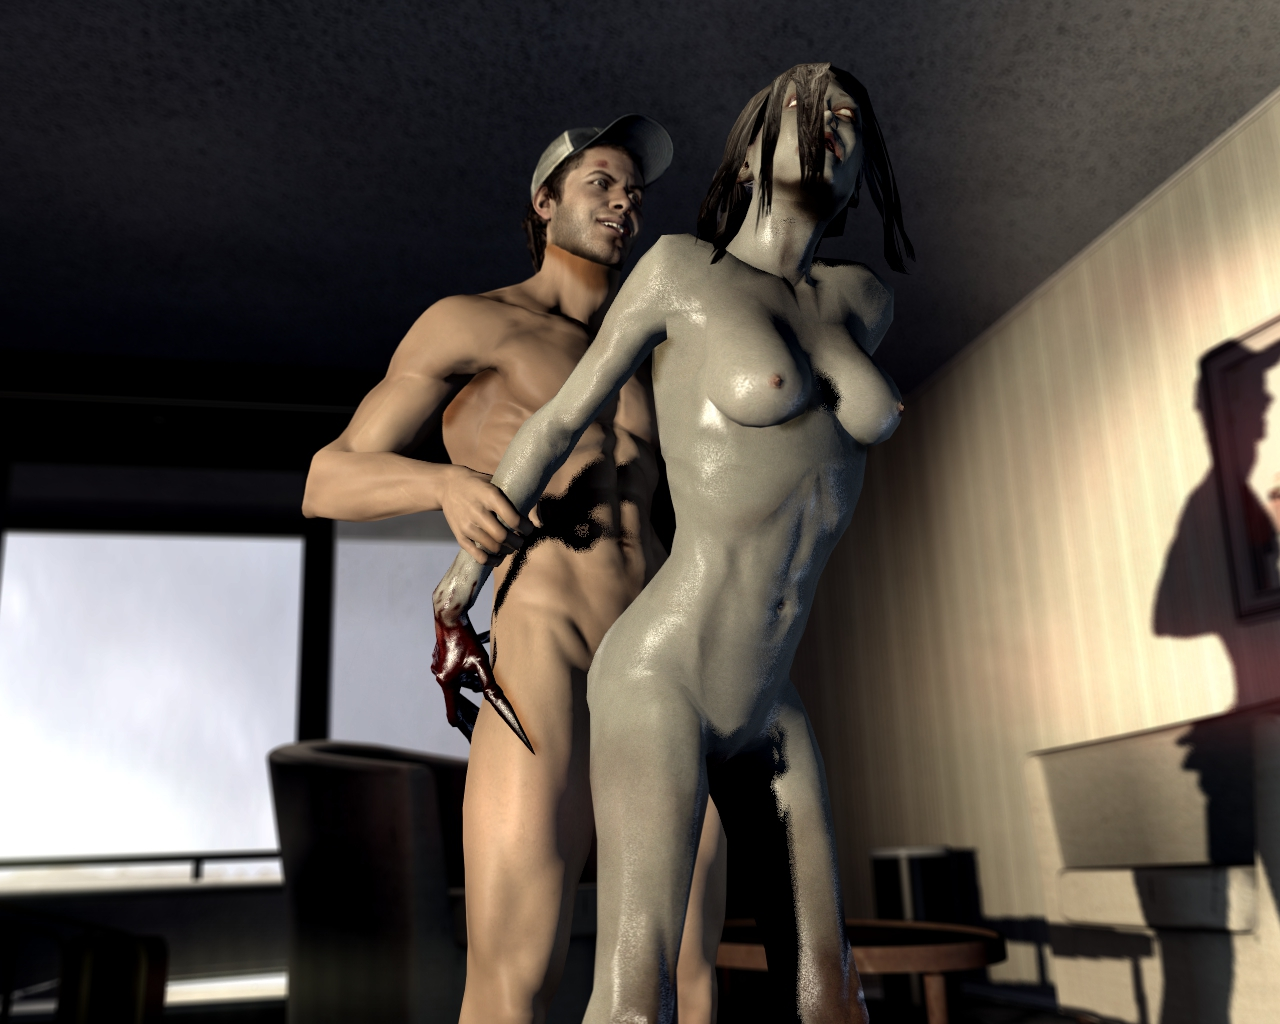 L4d witch sex porn fre video nsfw galleries